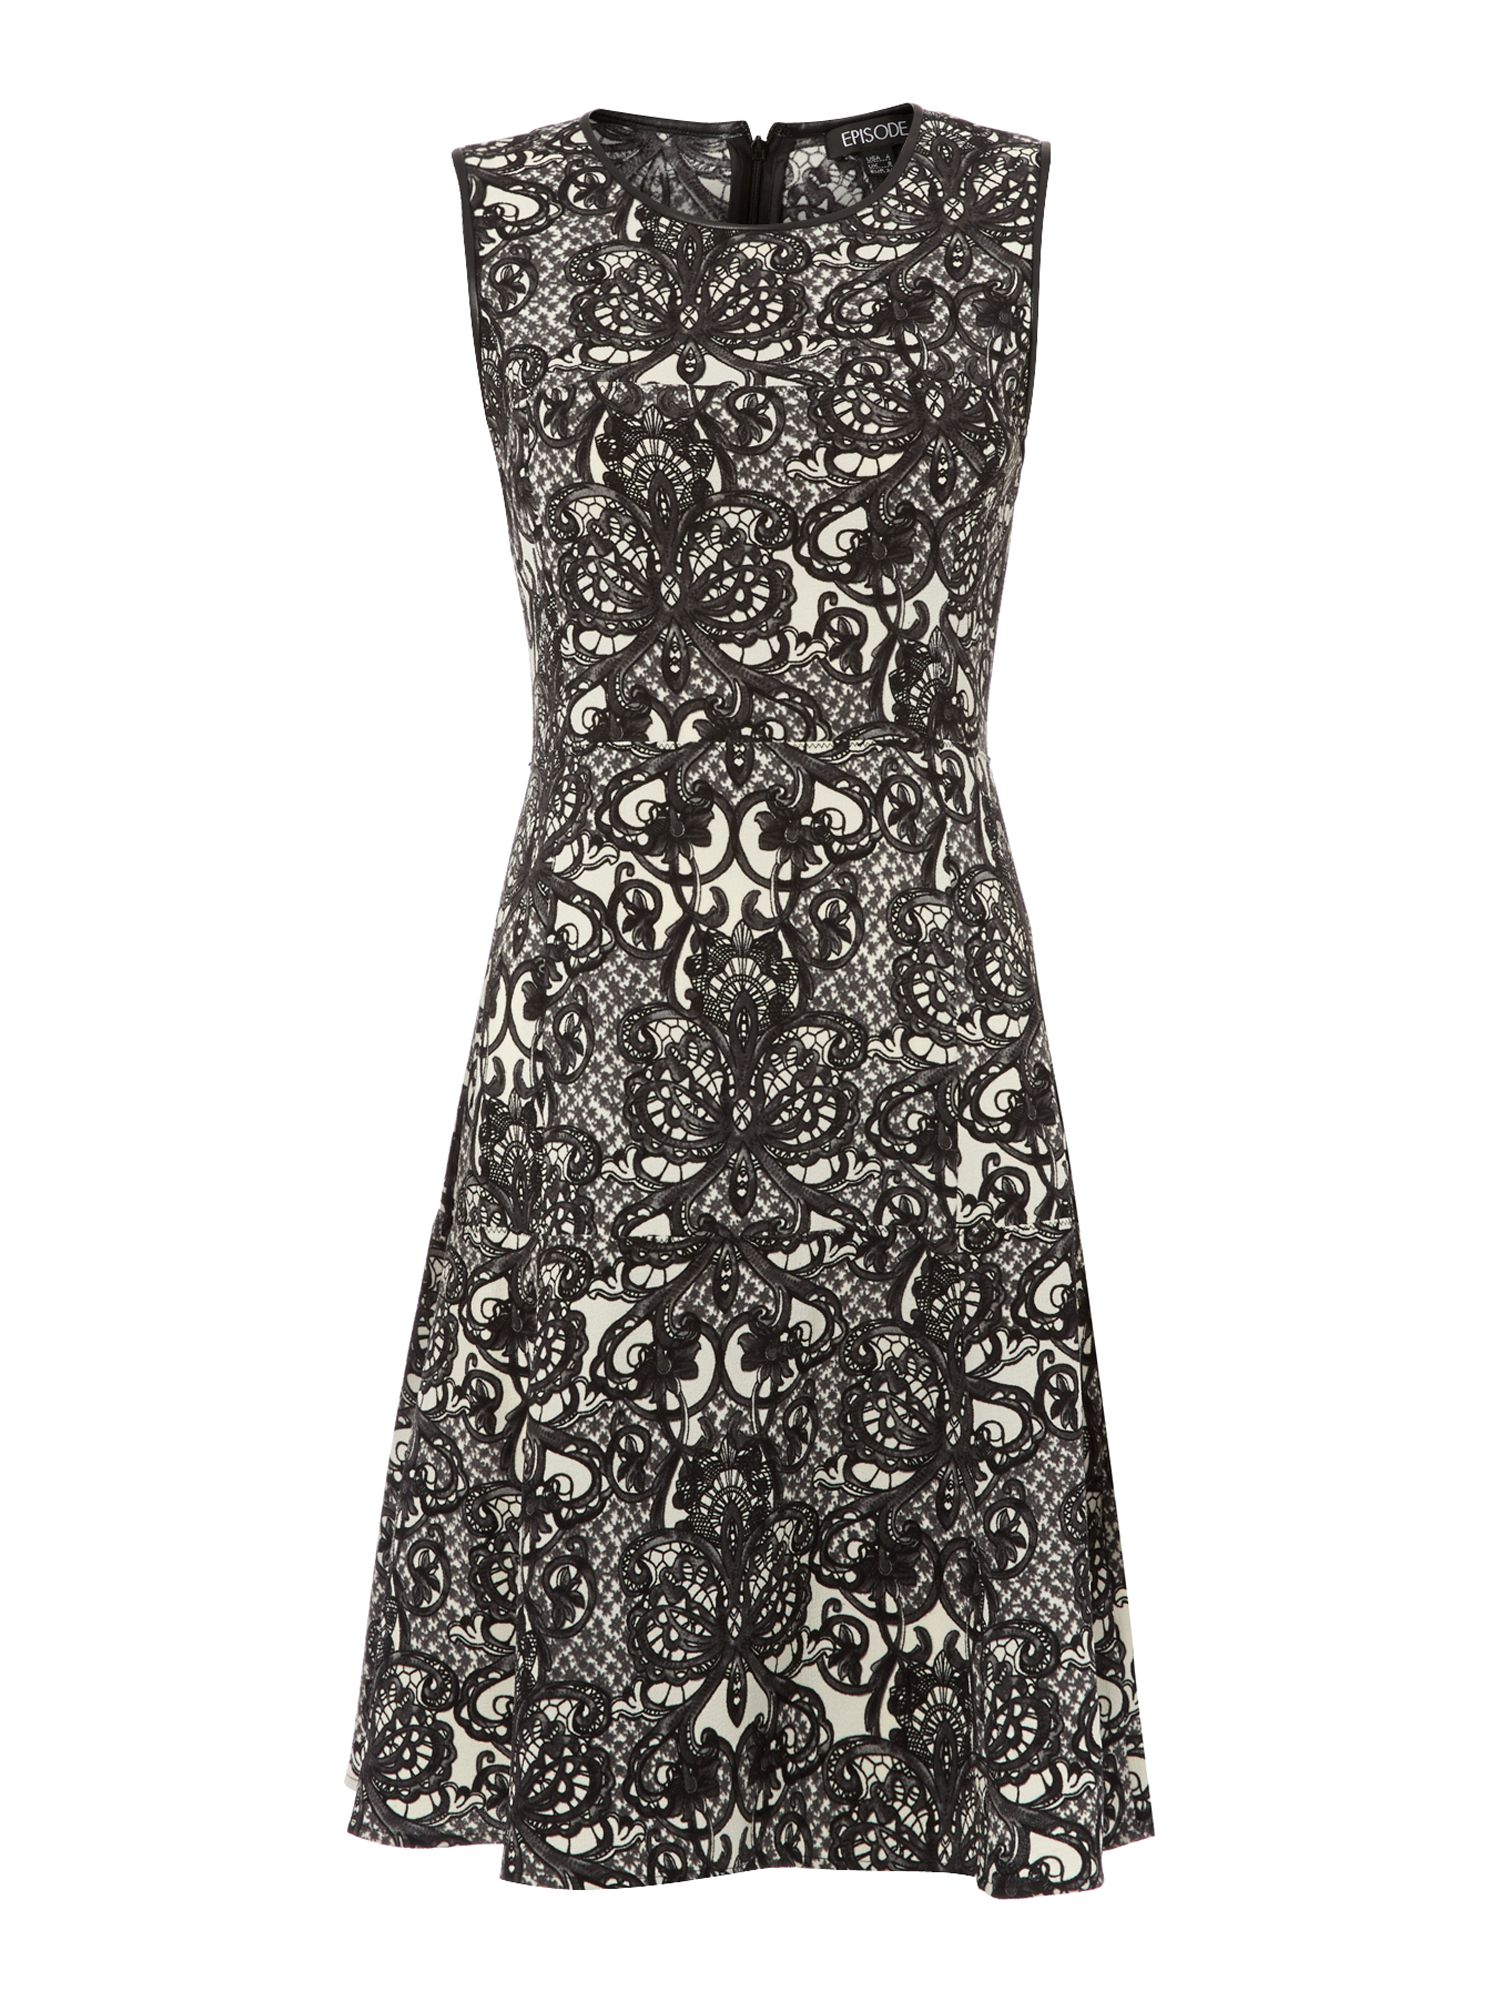 Fit & flare lace printed dress with belt